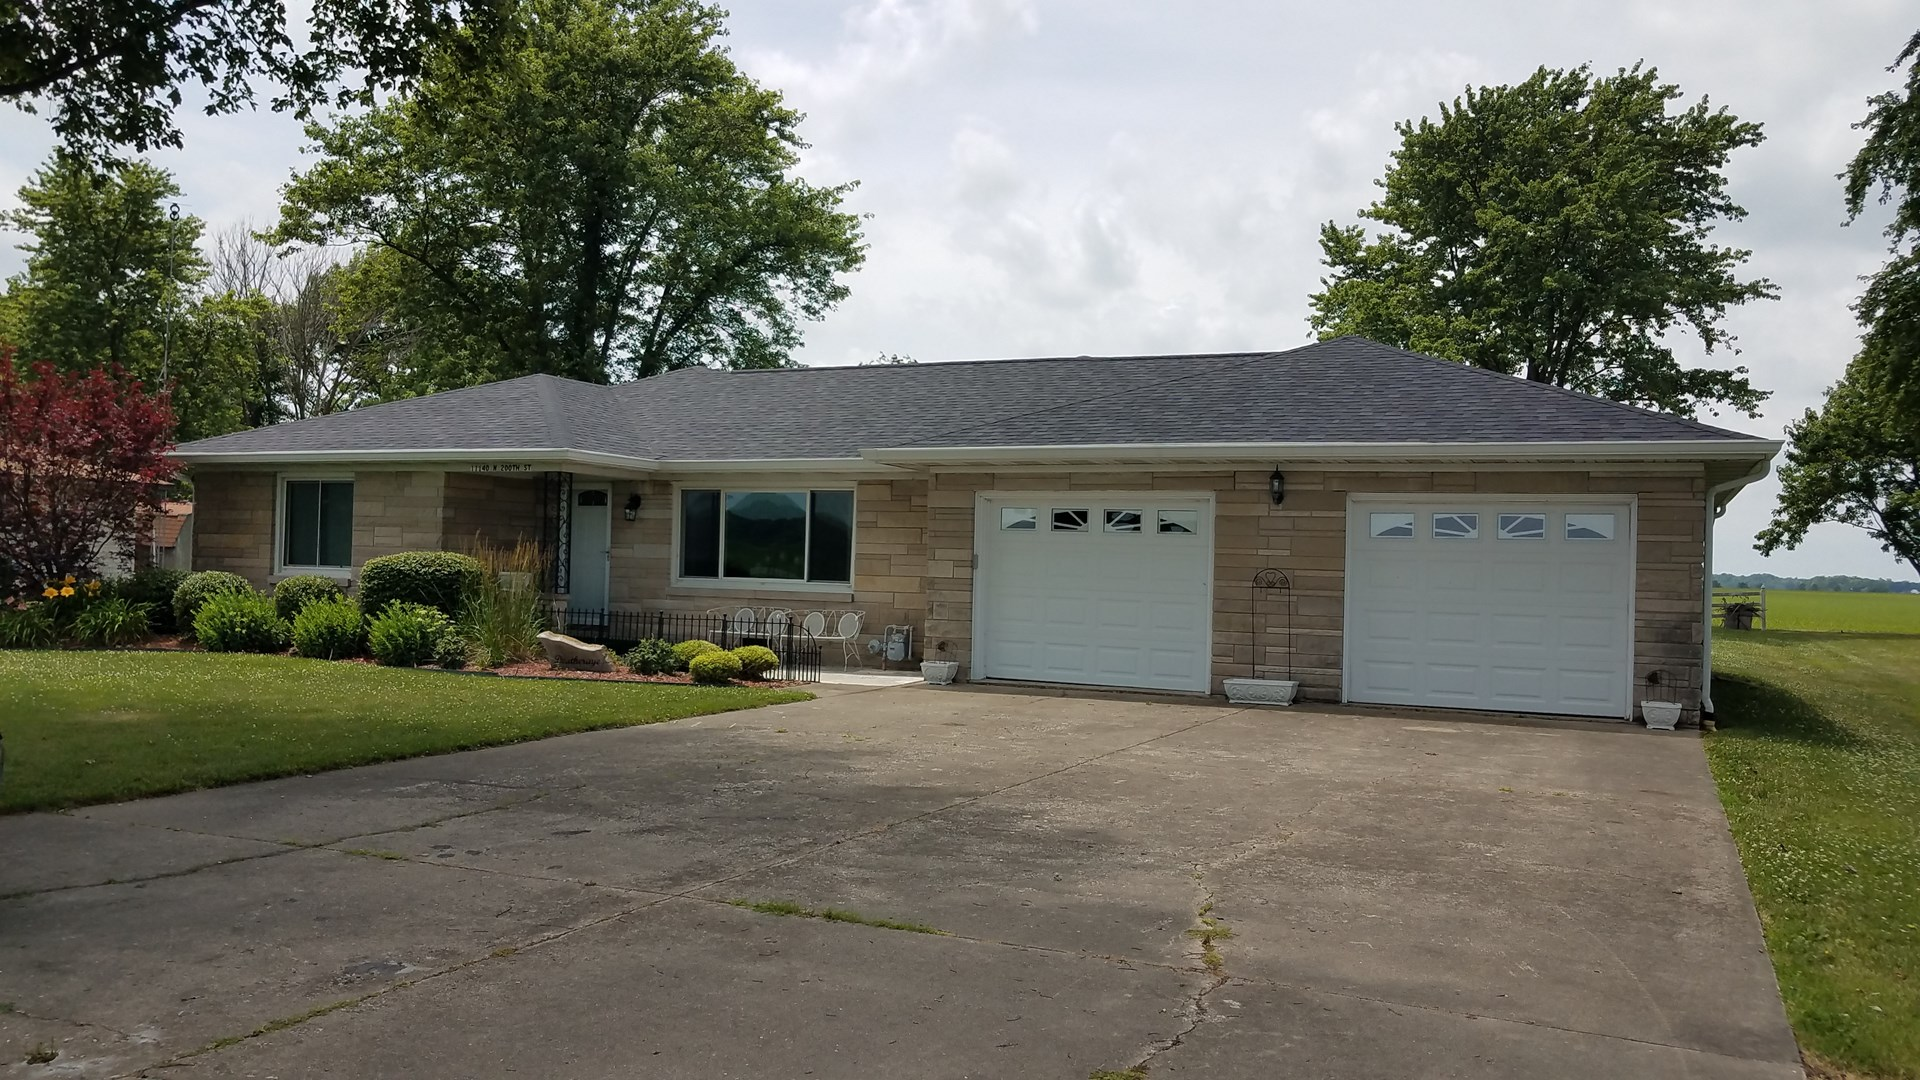 3 Bedroom, 2 Bath Home, For Sale at Auction, Oblong, IL